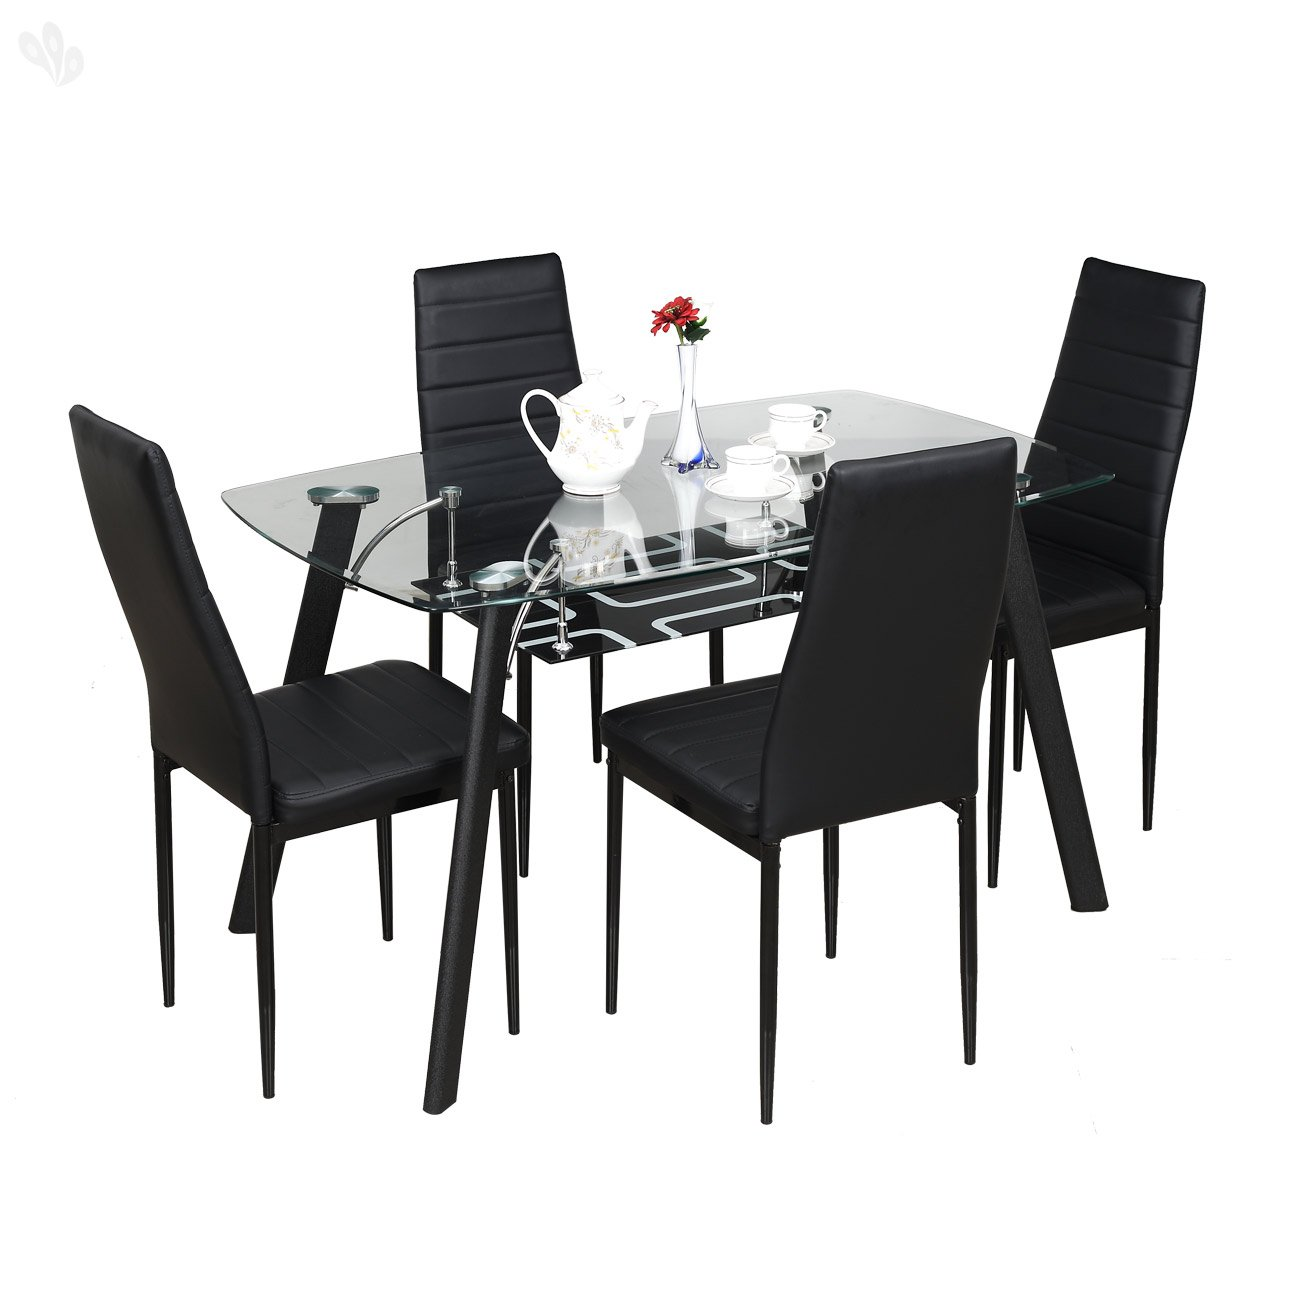 Royal oak milan four seater dining table set black for Four chair dining table set